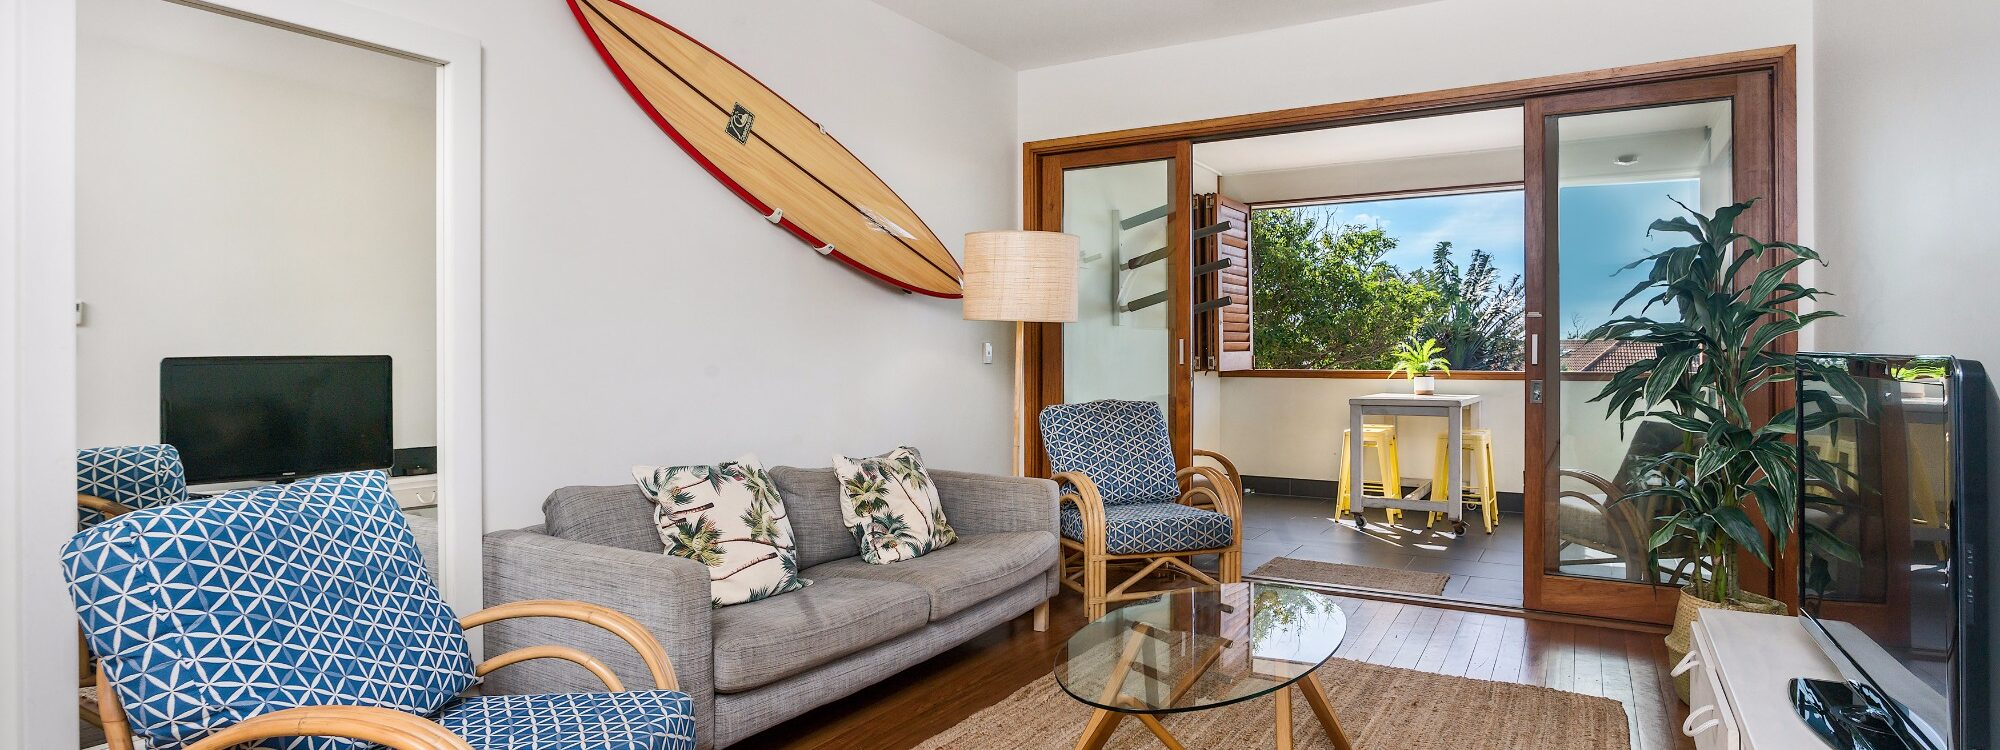 Quiksilver Apartments - The Pass - relaxing lounge